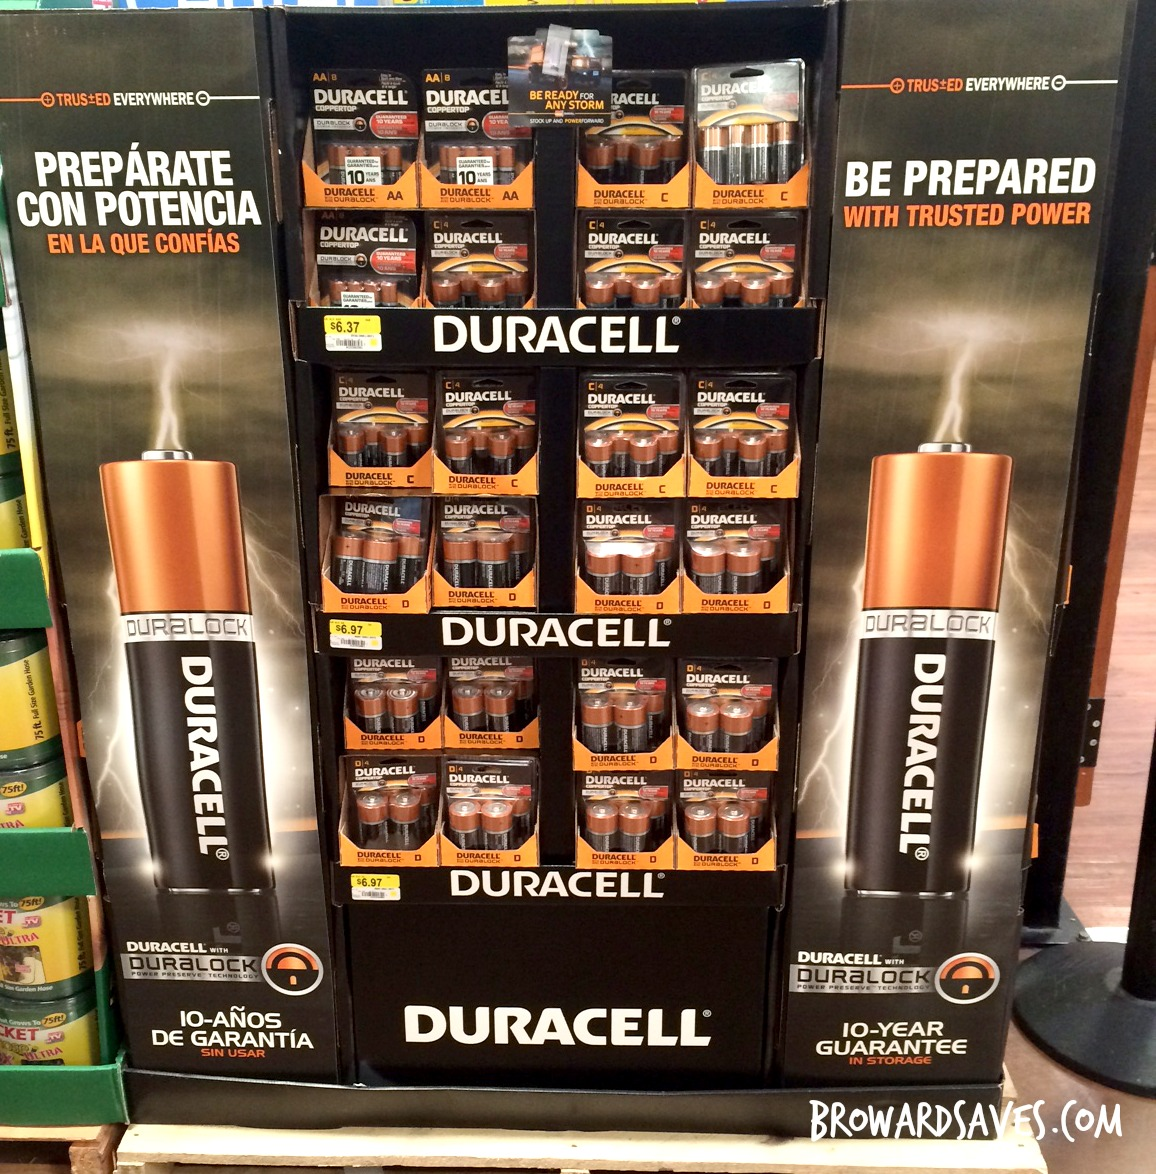 how-to-keep-kids-calm-during-a-storm-with-duracell-1